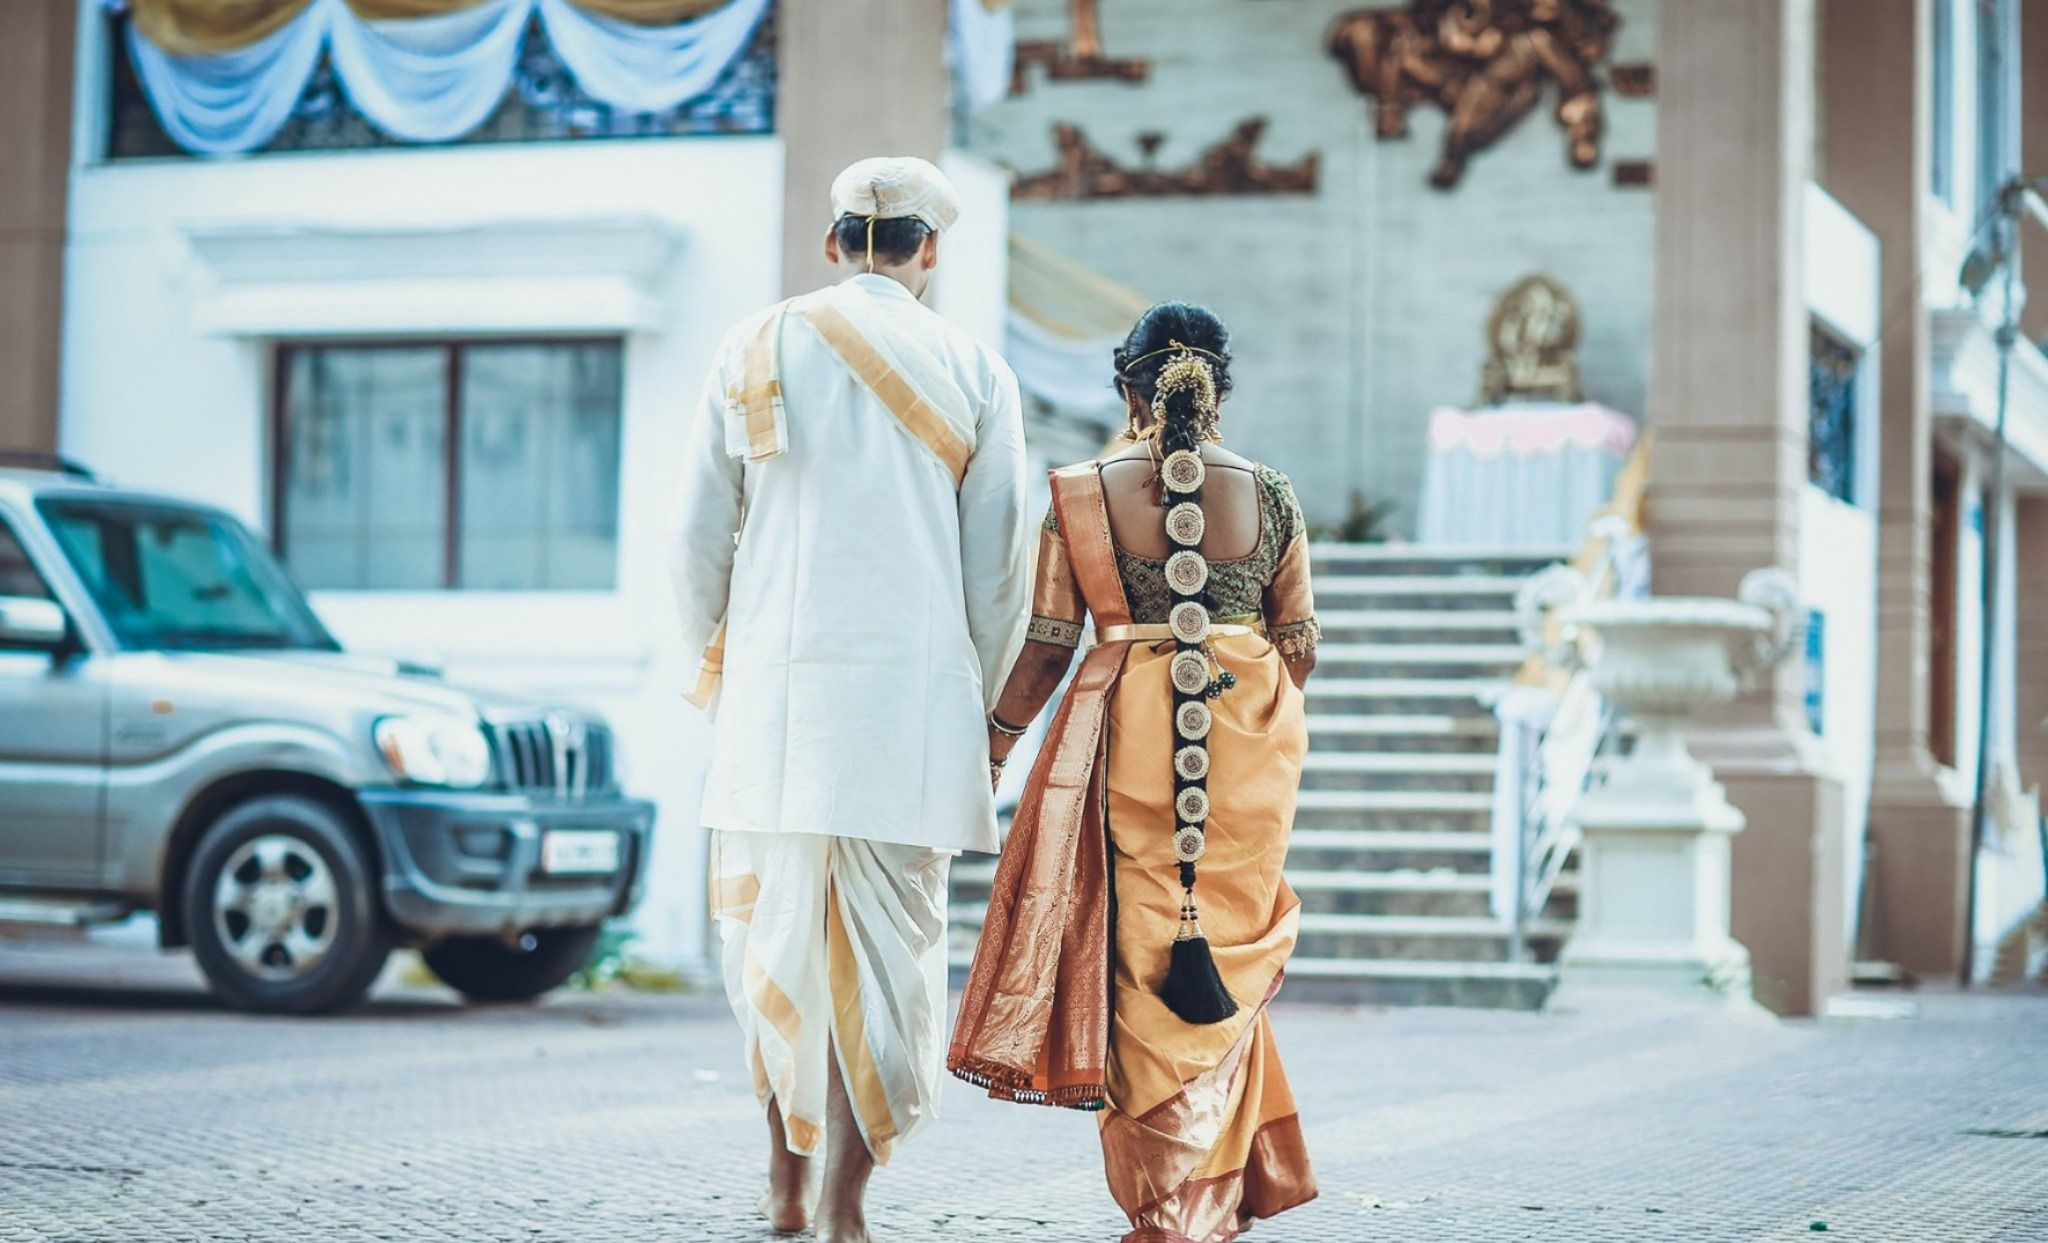 The Wedding Clickers - Photography in Bangalore #photography #photographylovers #photographysouls #photographyeveryday #photographyislife #photographylover #photographyislifee #photographylife #photographyart #photographyoftheday #photographyy #photographylove #photographyaddict #photographyskills #photographybook #photographyprops #photographydaily #photographyisart #photographyaccount #photographystudio #photographyday #photographynature #photographysoul #photographystudent